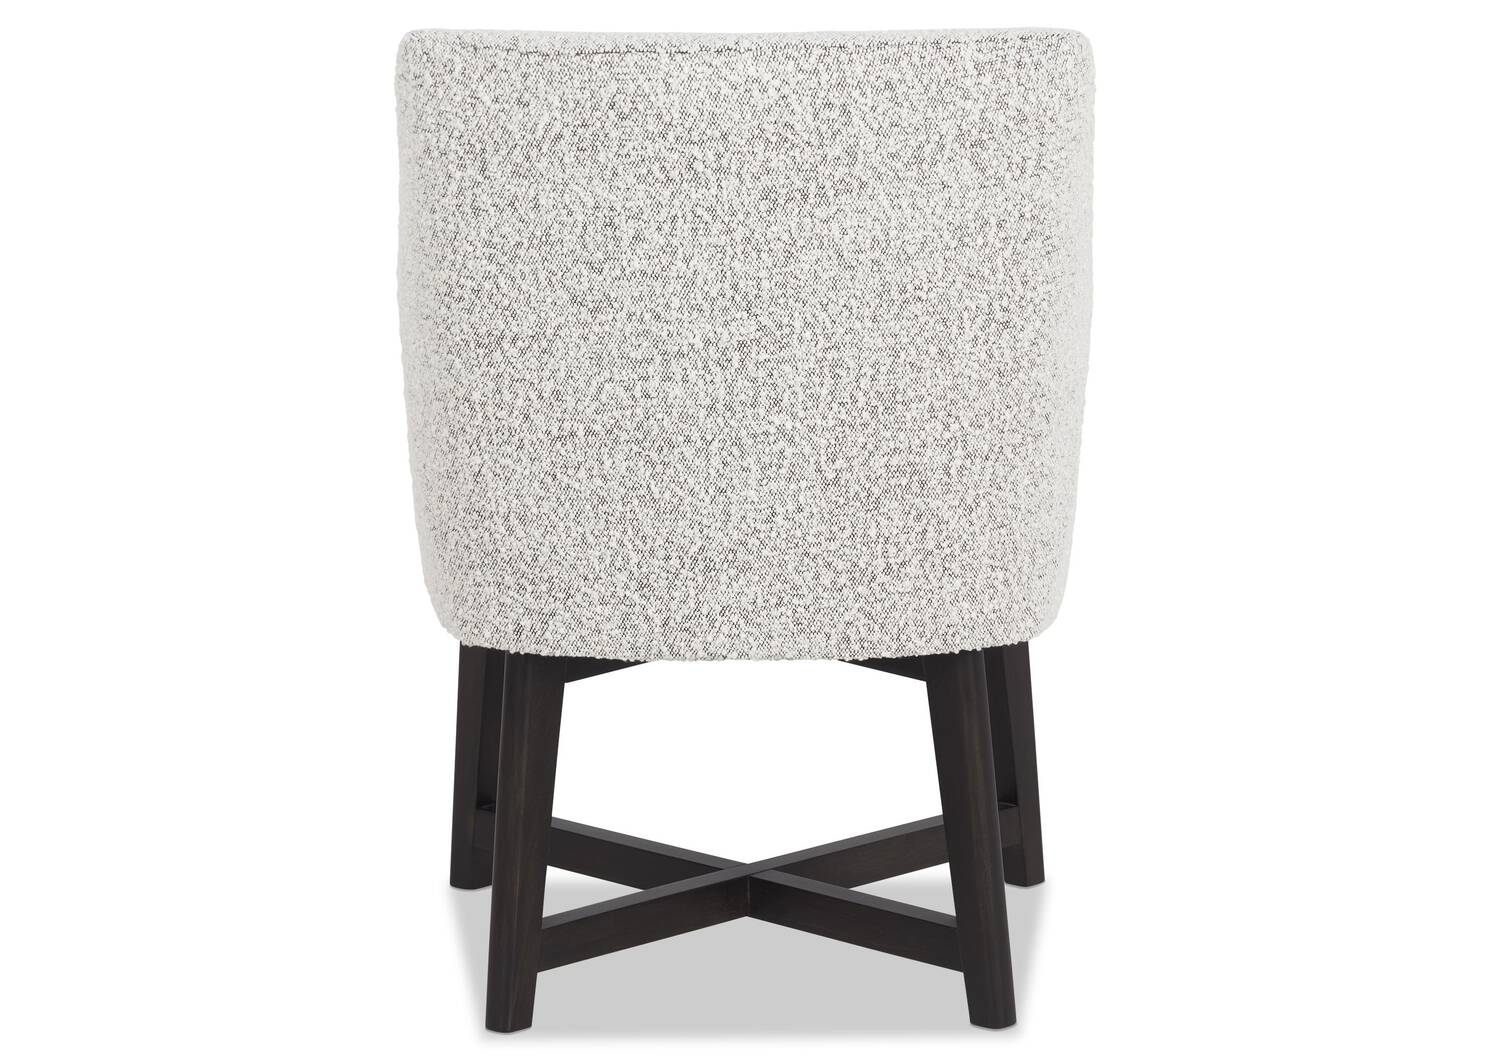 Turcotte Dining Chair -Amalie Pepper